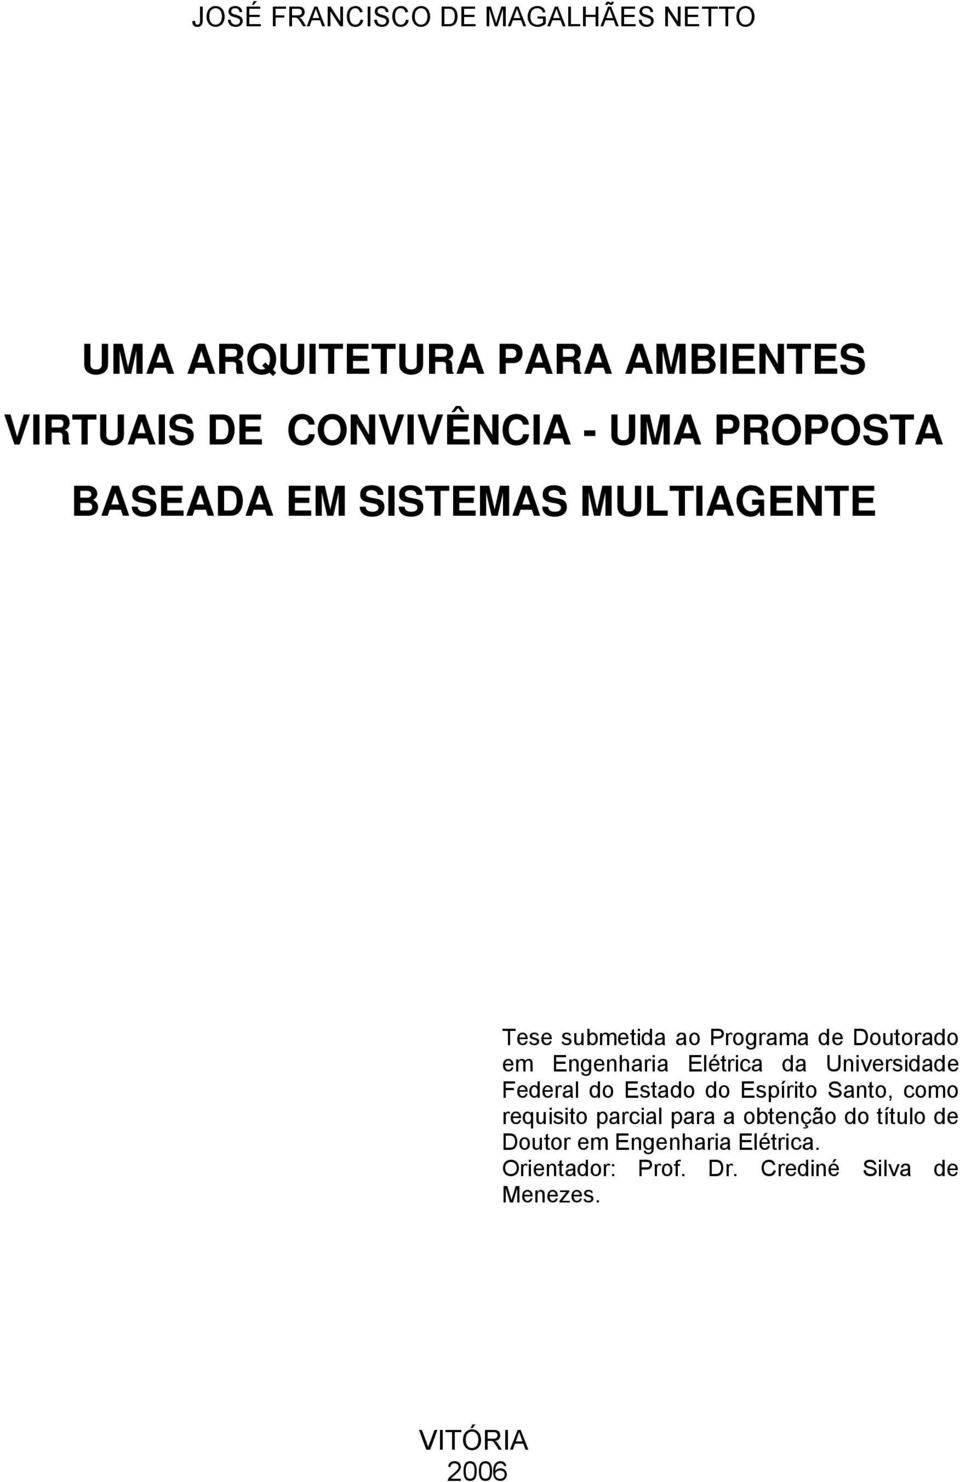 Elétrica da Universidade Federal do Estado do Espírito Santo, como requisito parcial para a